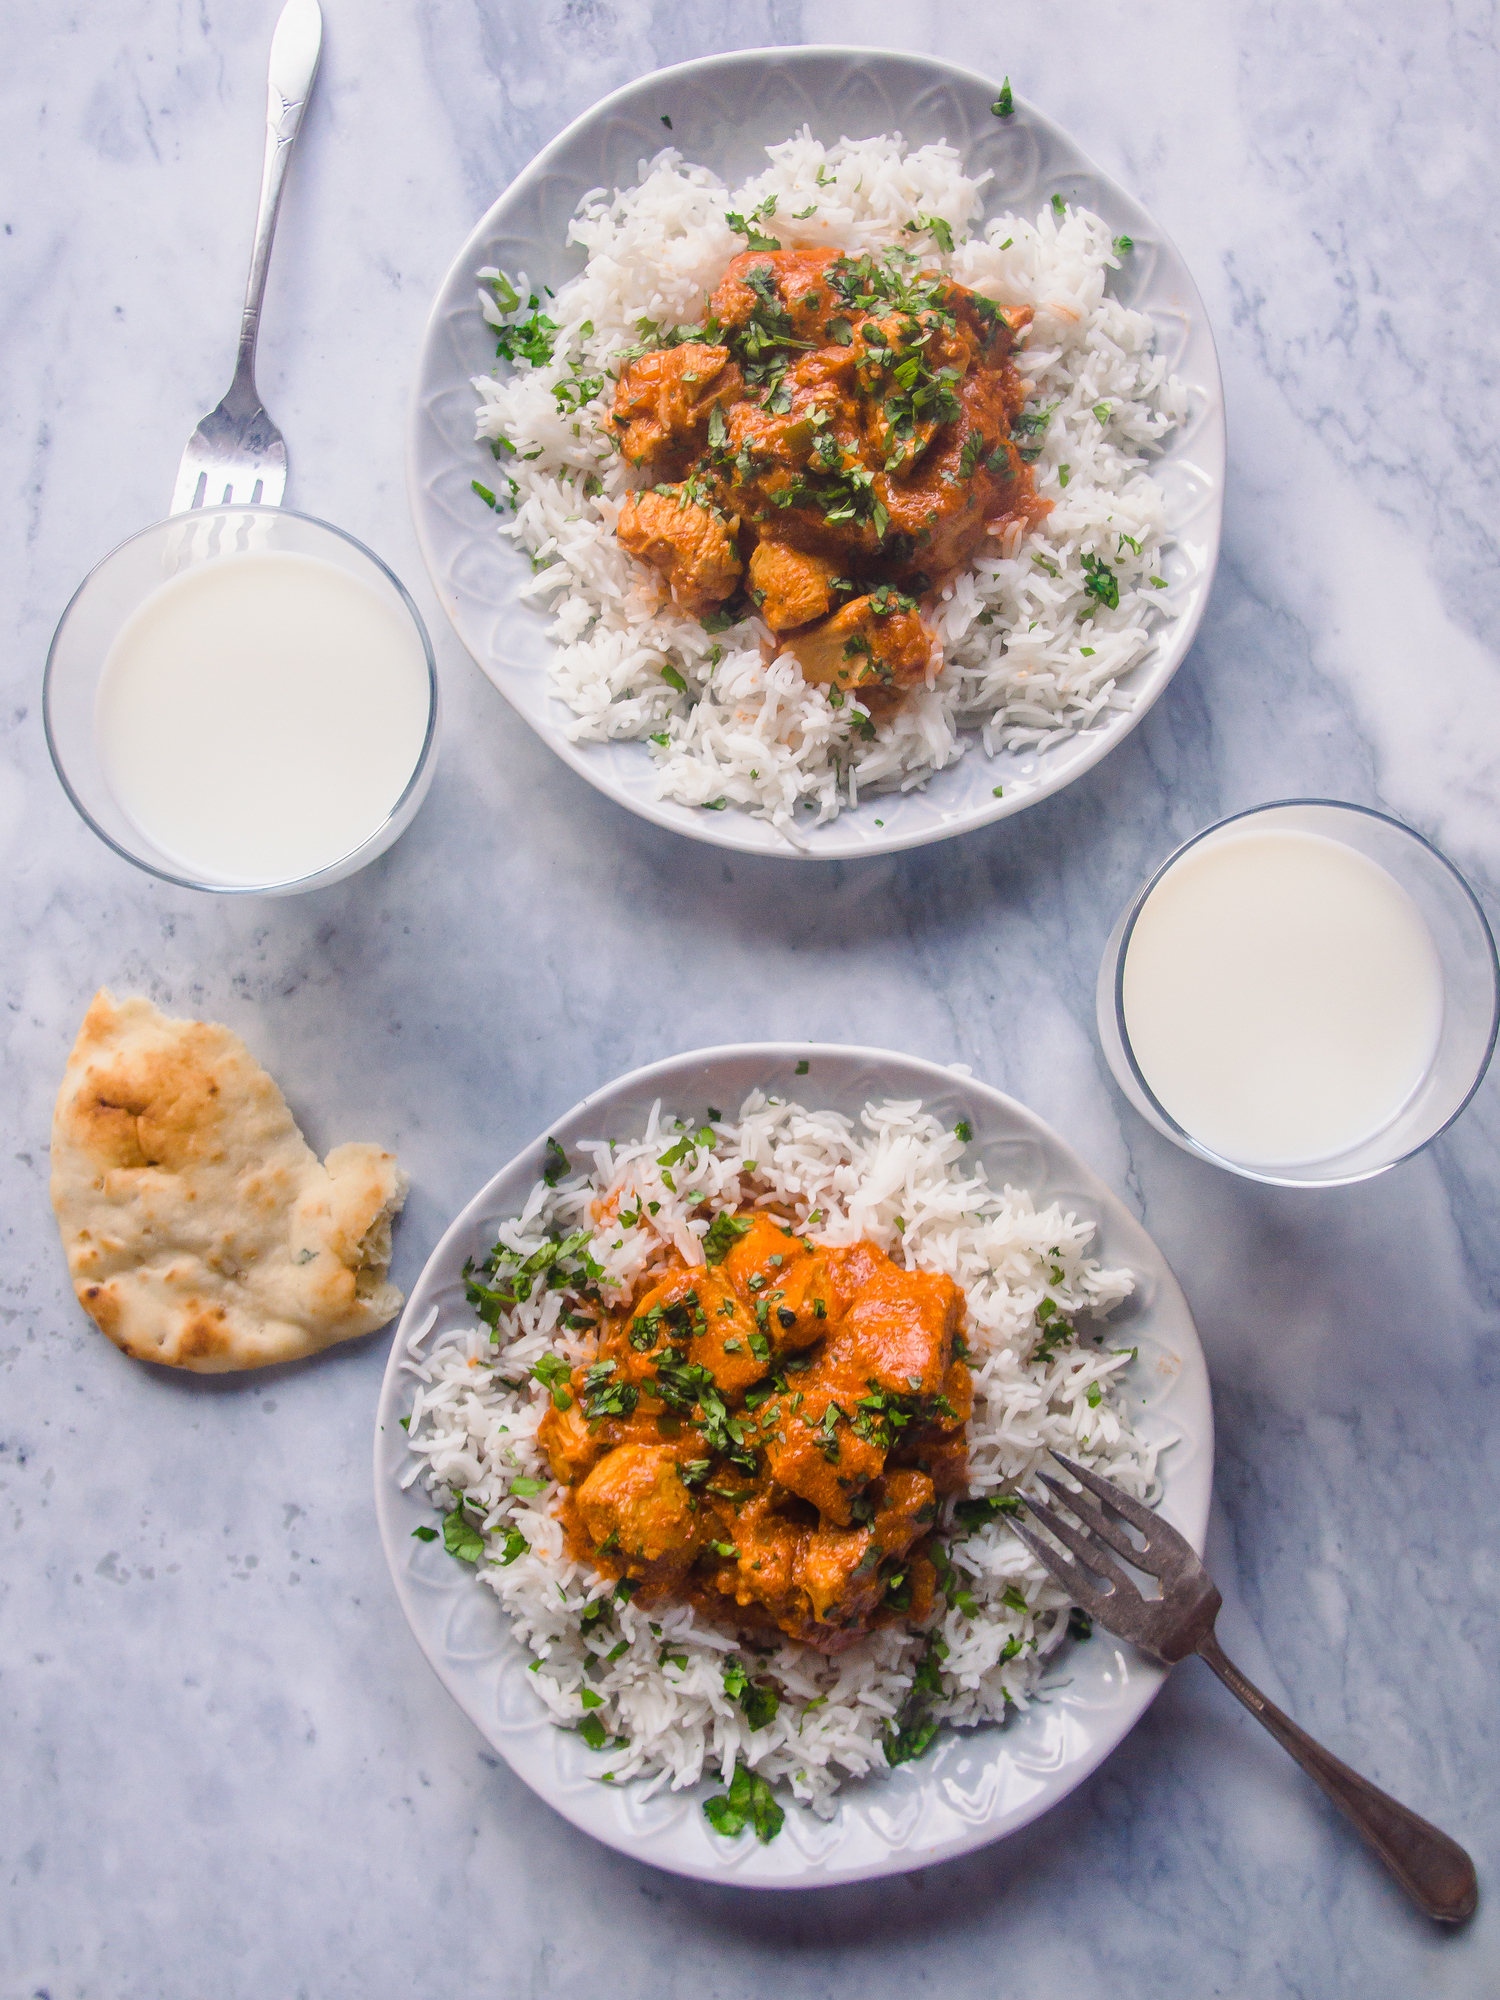 This Instant Pot chicken curry recipe takes less than 20 minutes to make and your family will love it. #spicy #glutenfree #curry